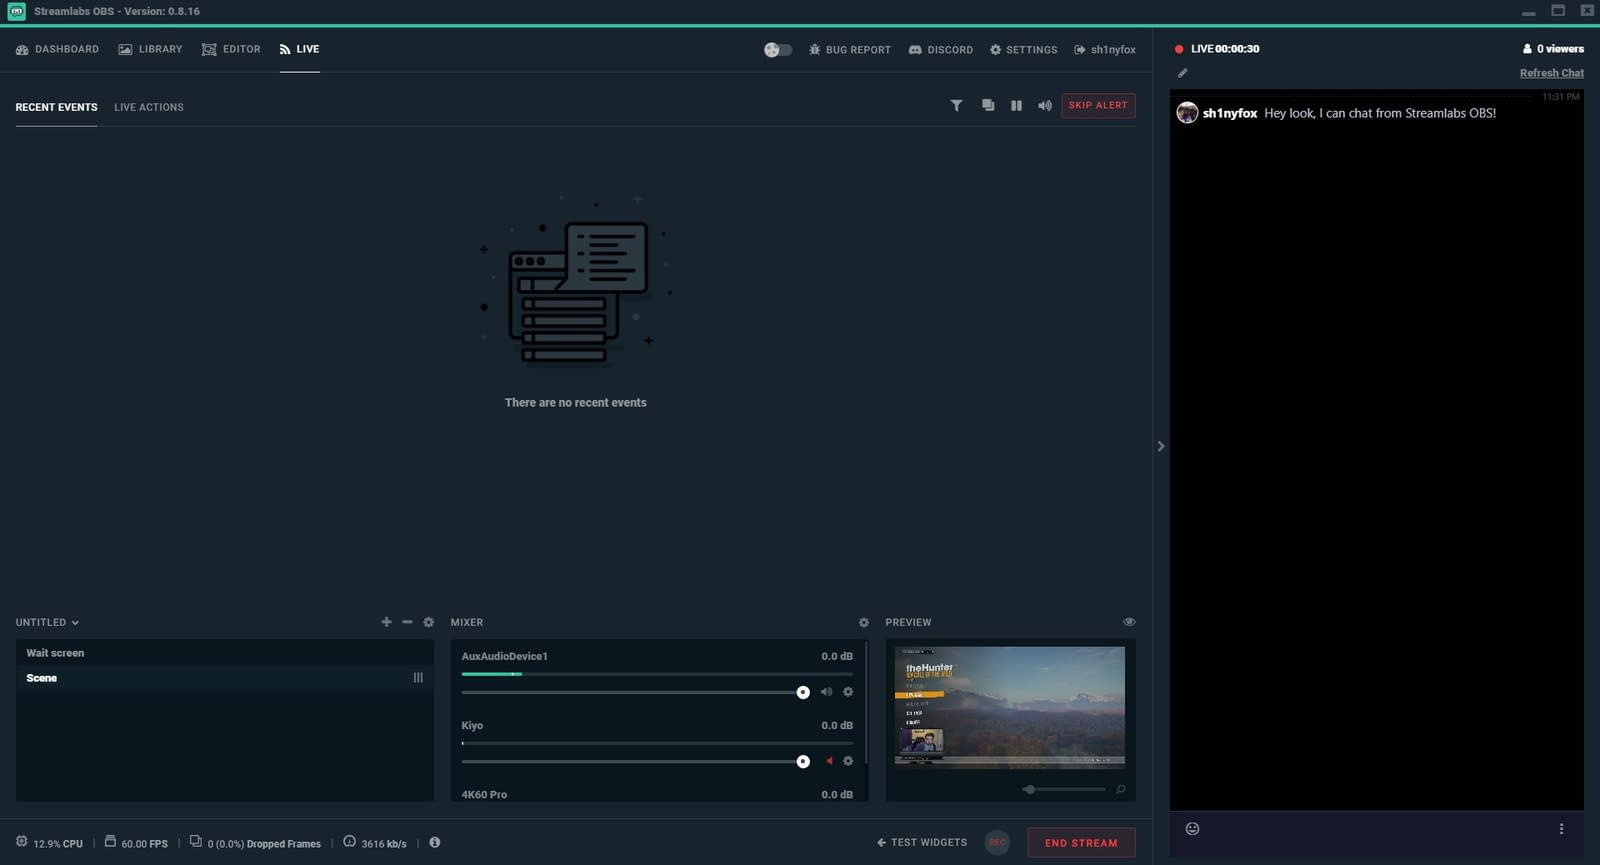 Streamlabs OBS recording software